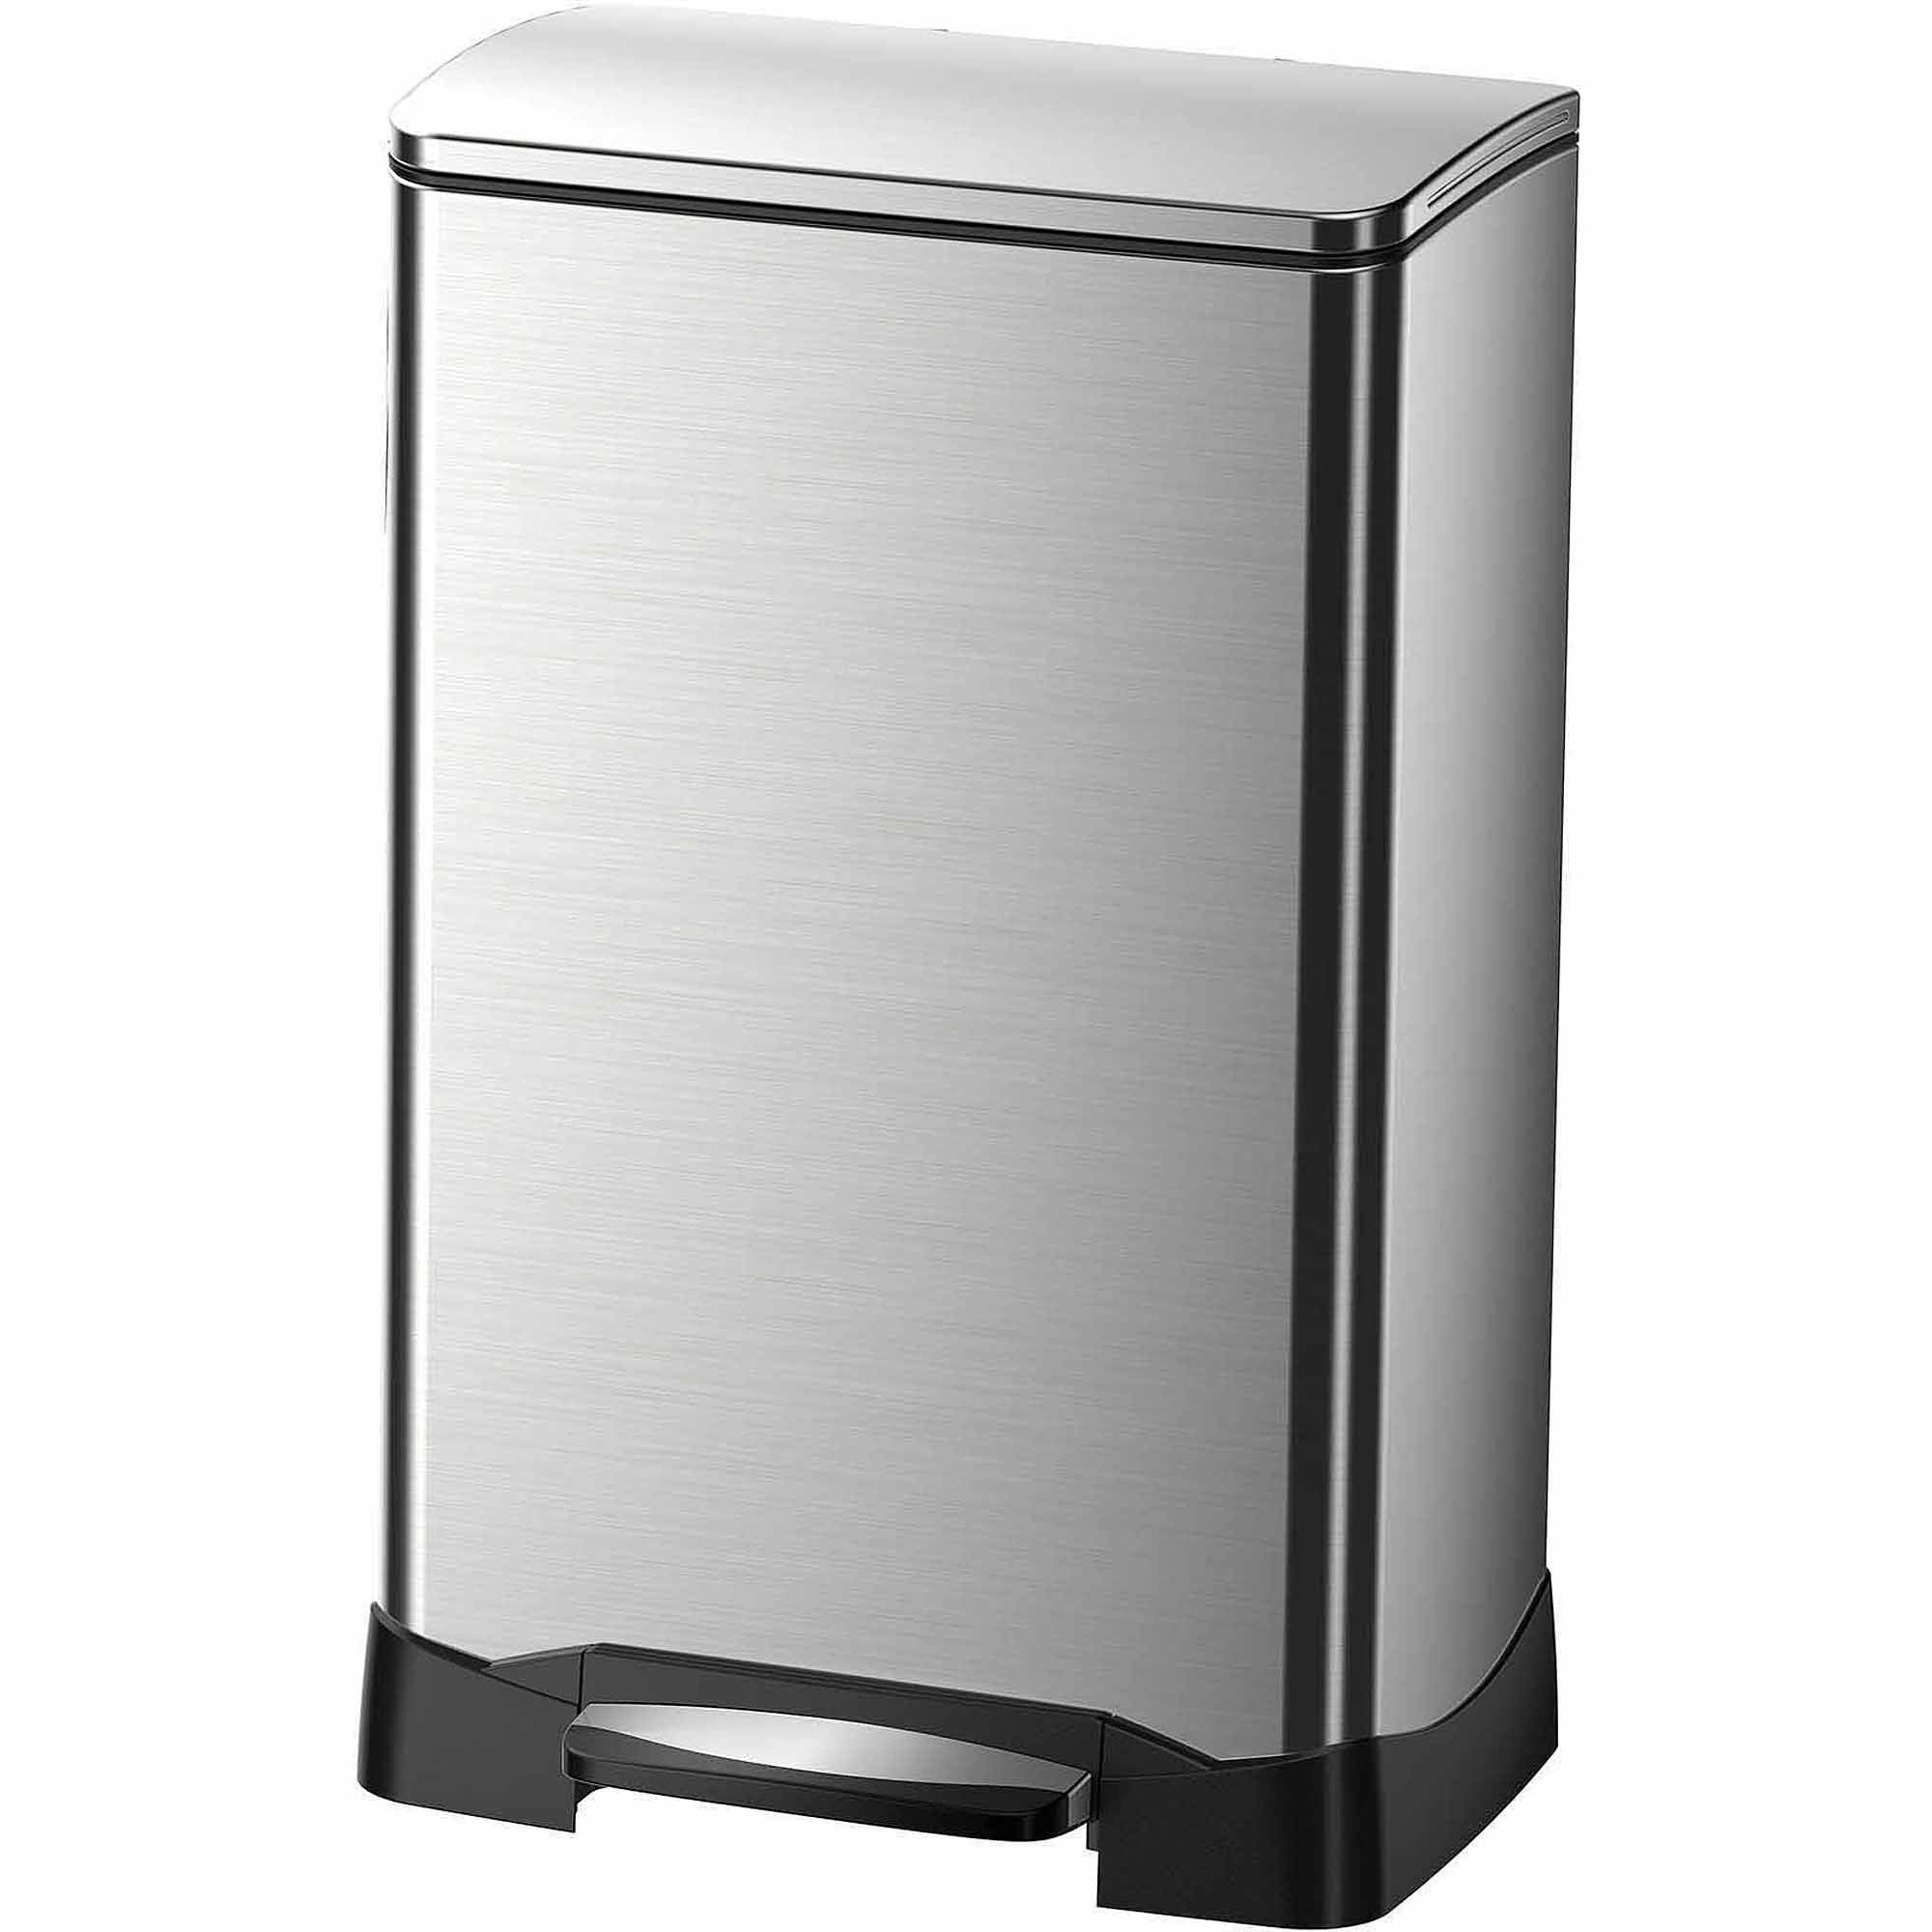 better homes and gardens 30 liter oval trashcan stainless steel